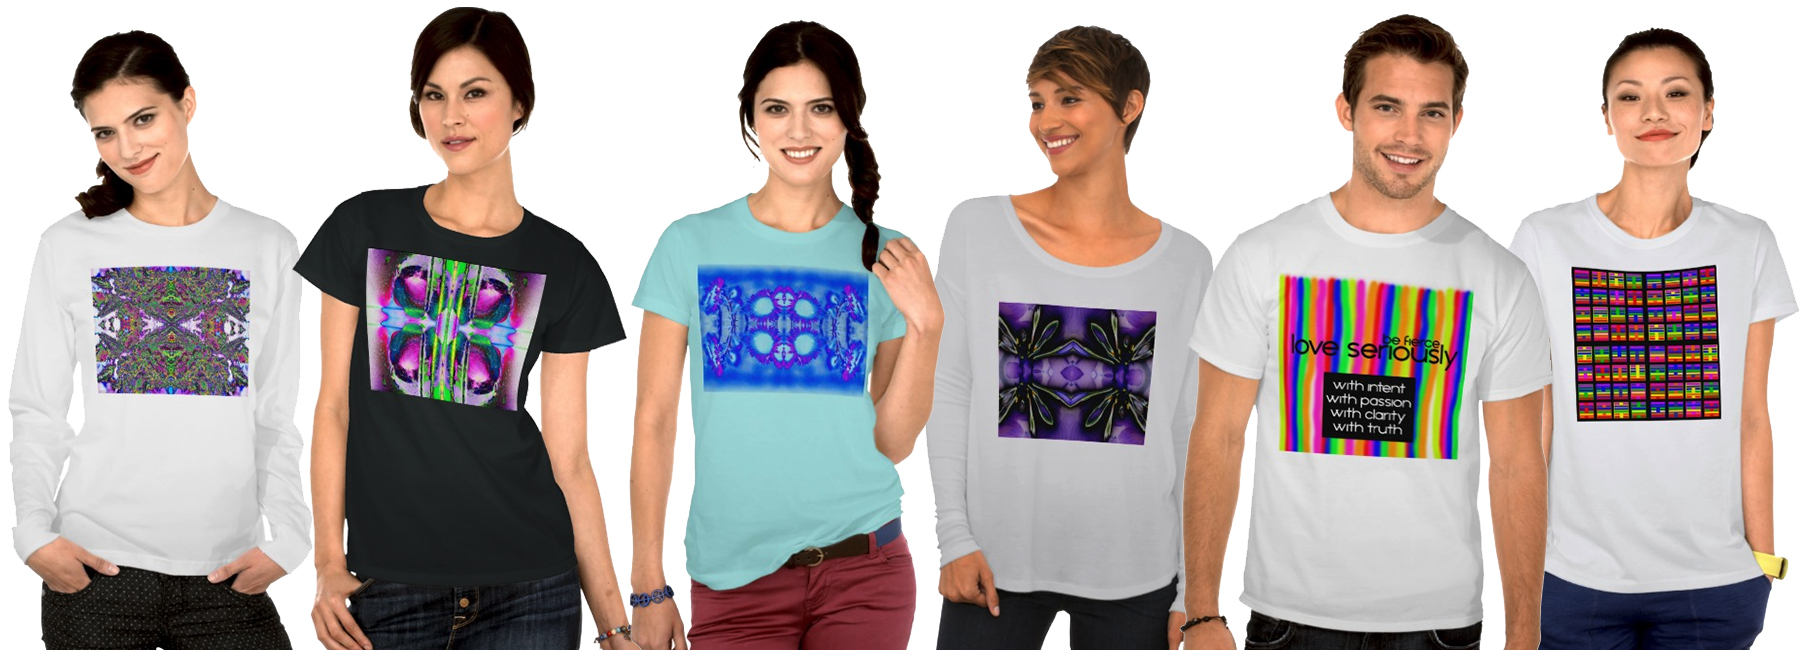 Psychedelic abstract visionary chakra i ching and meditation art tee shirt designs created by